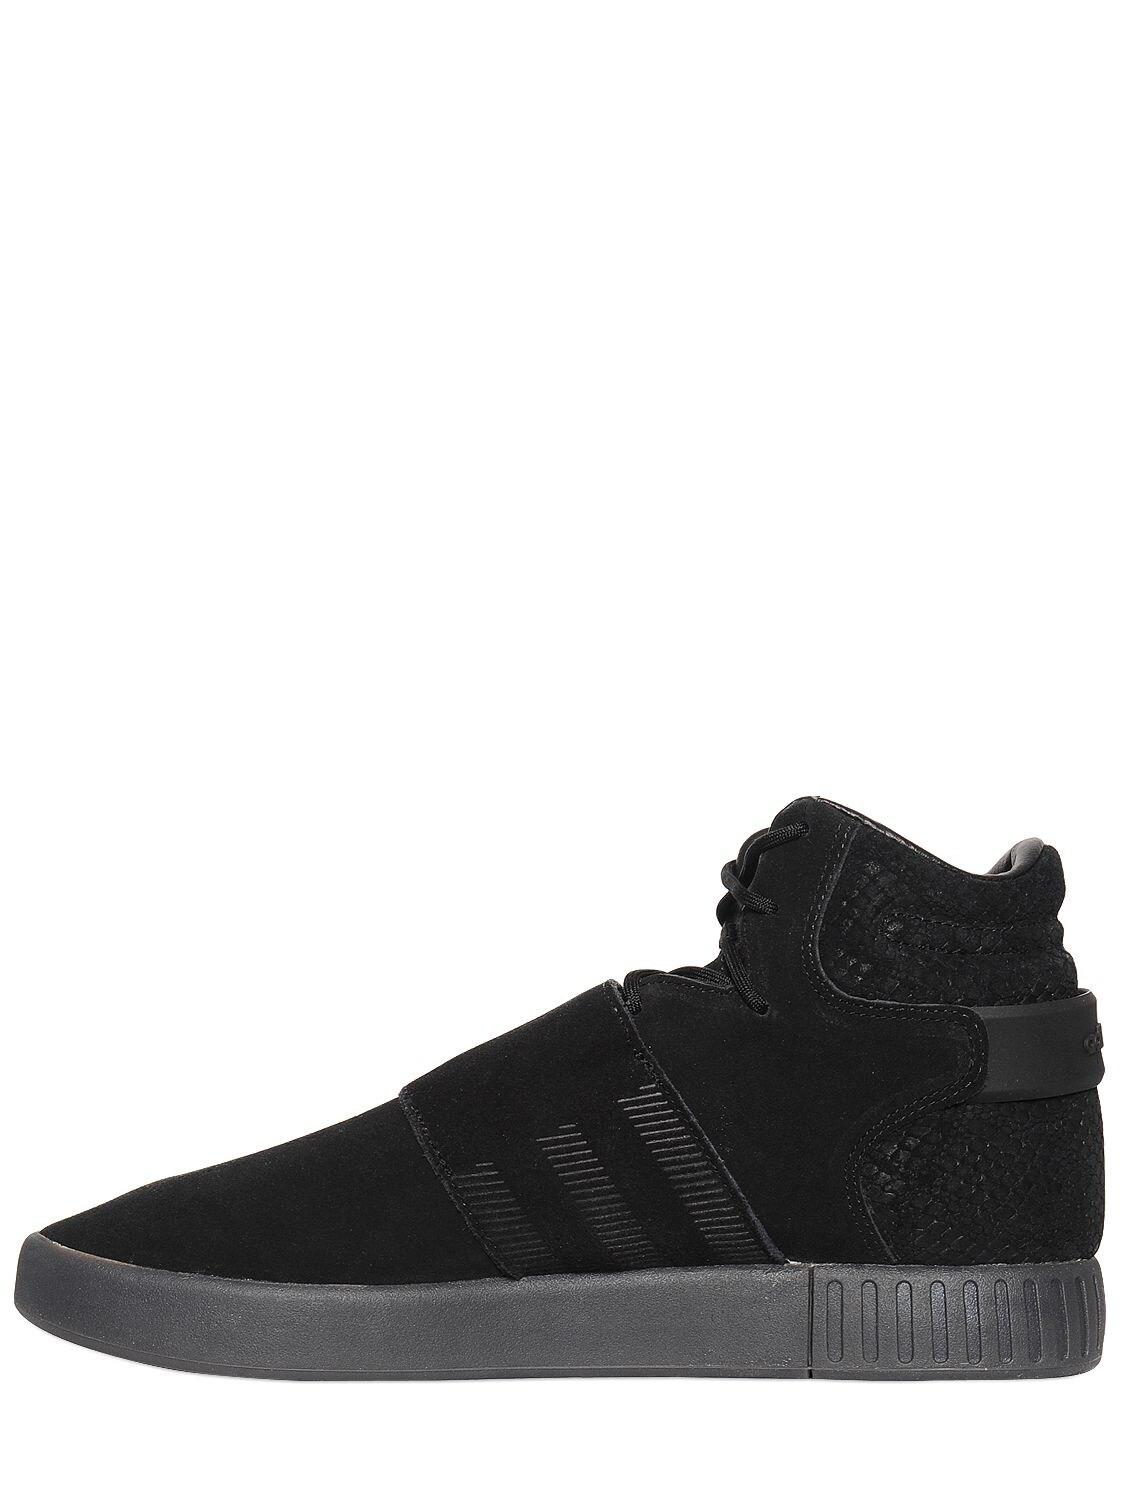 Tubular Invader Suede High Top Sneakers